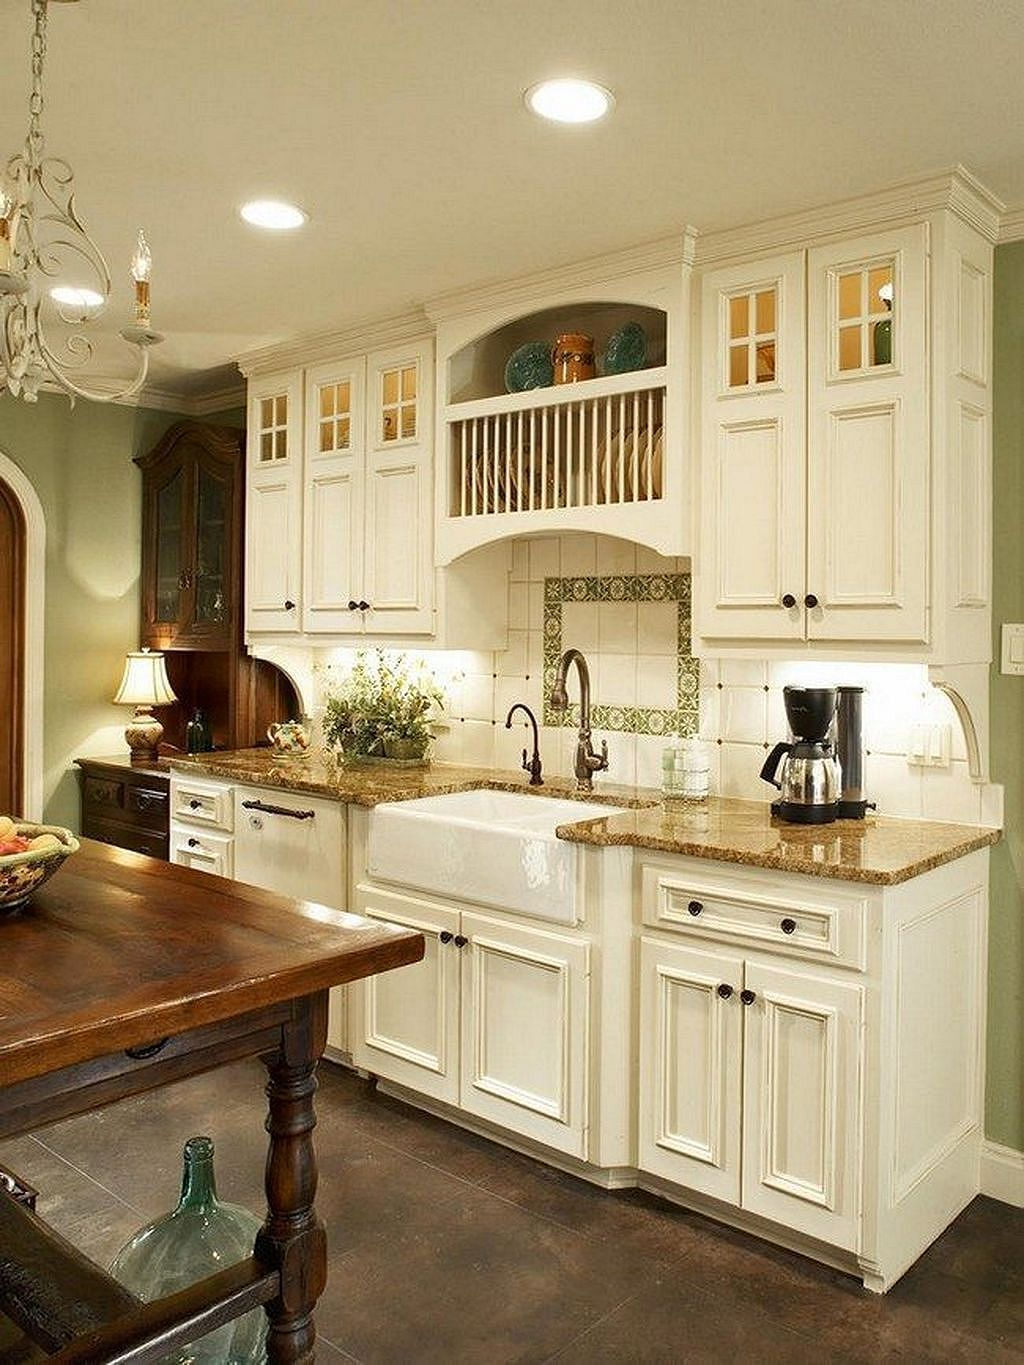 modern french country kitchen design ideas 20 french country decorating kitchen french on kitchen interior french country id=68014